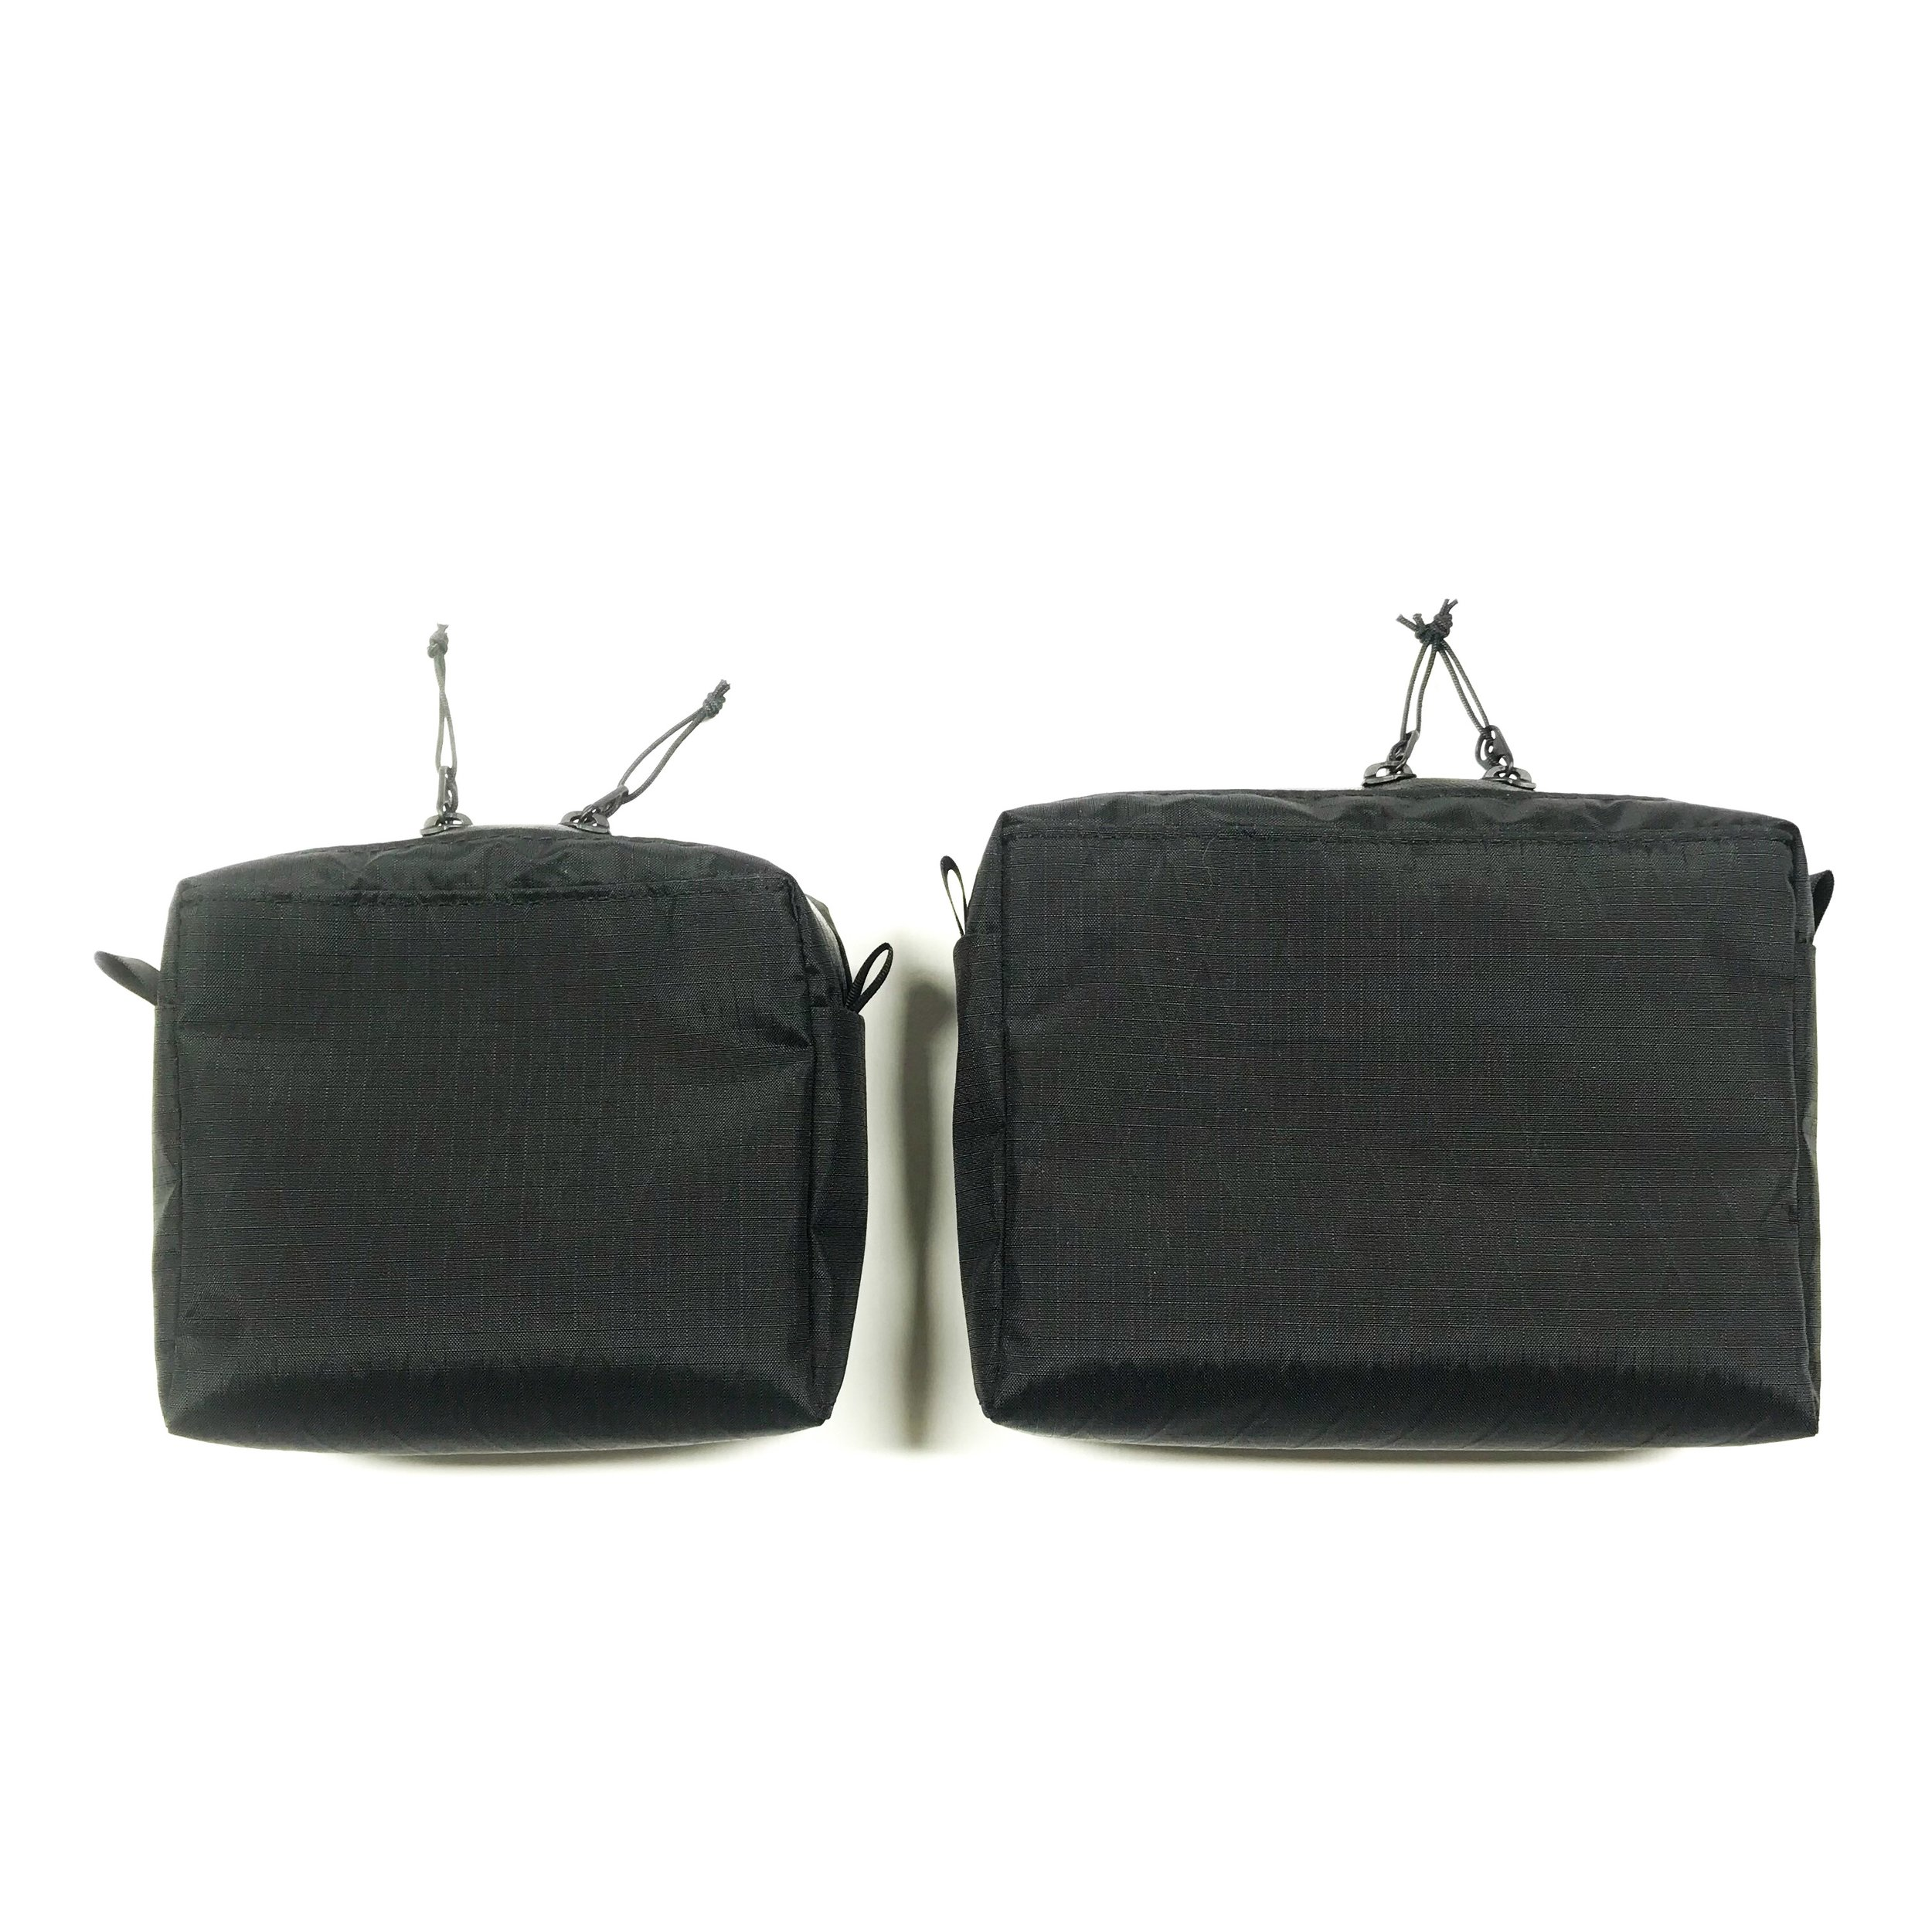 Hip Belt Pockets (2 sizes) from $18